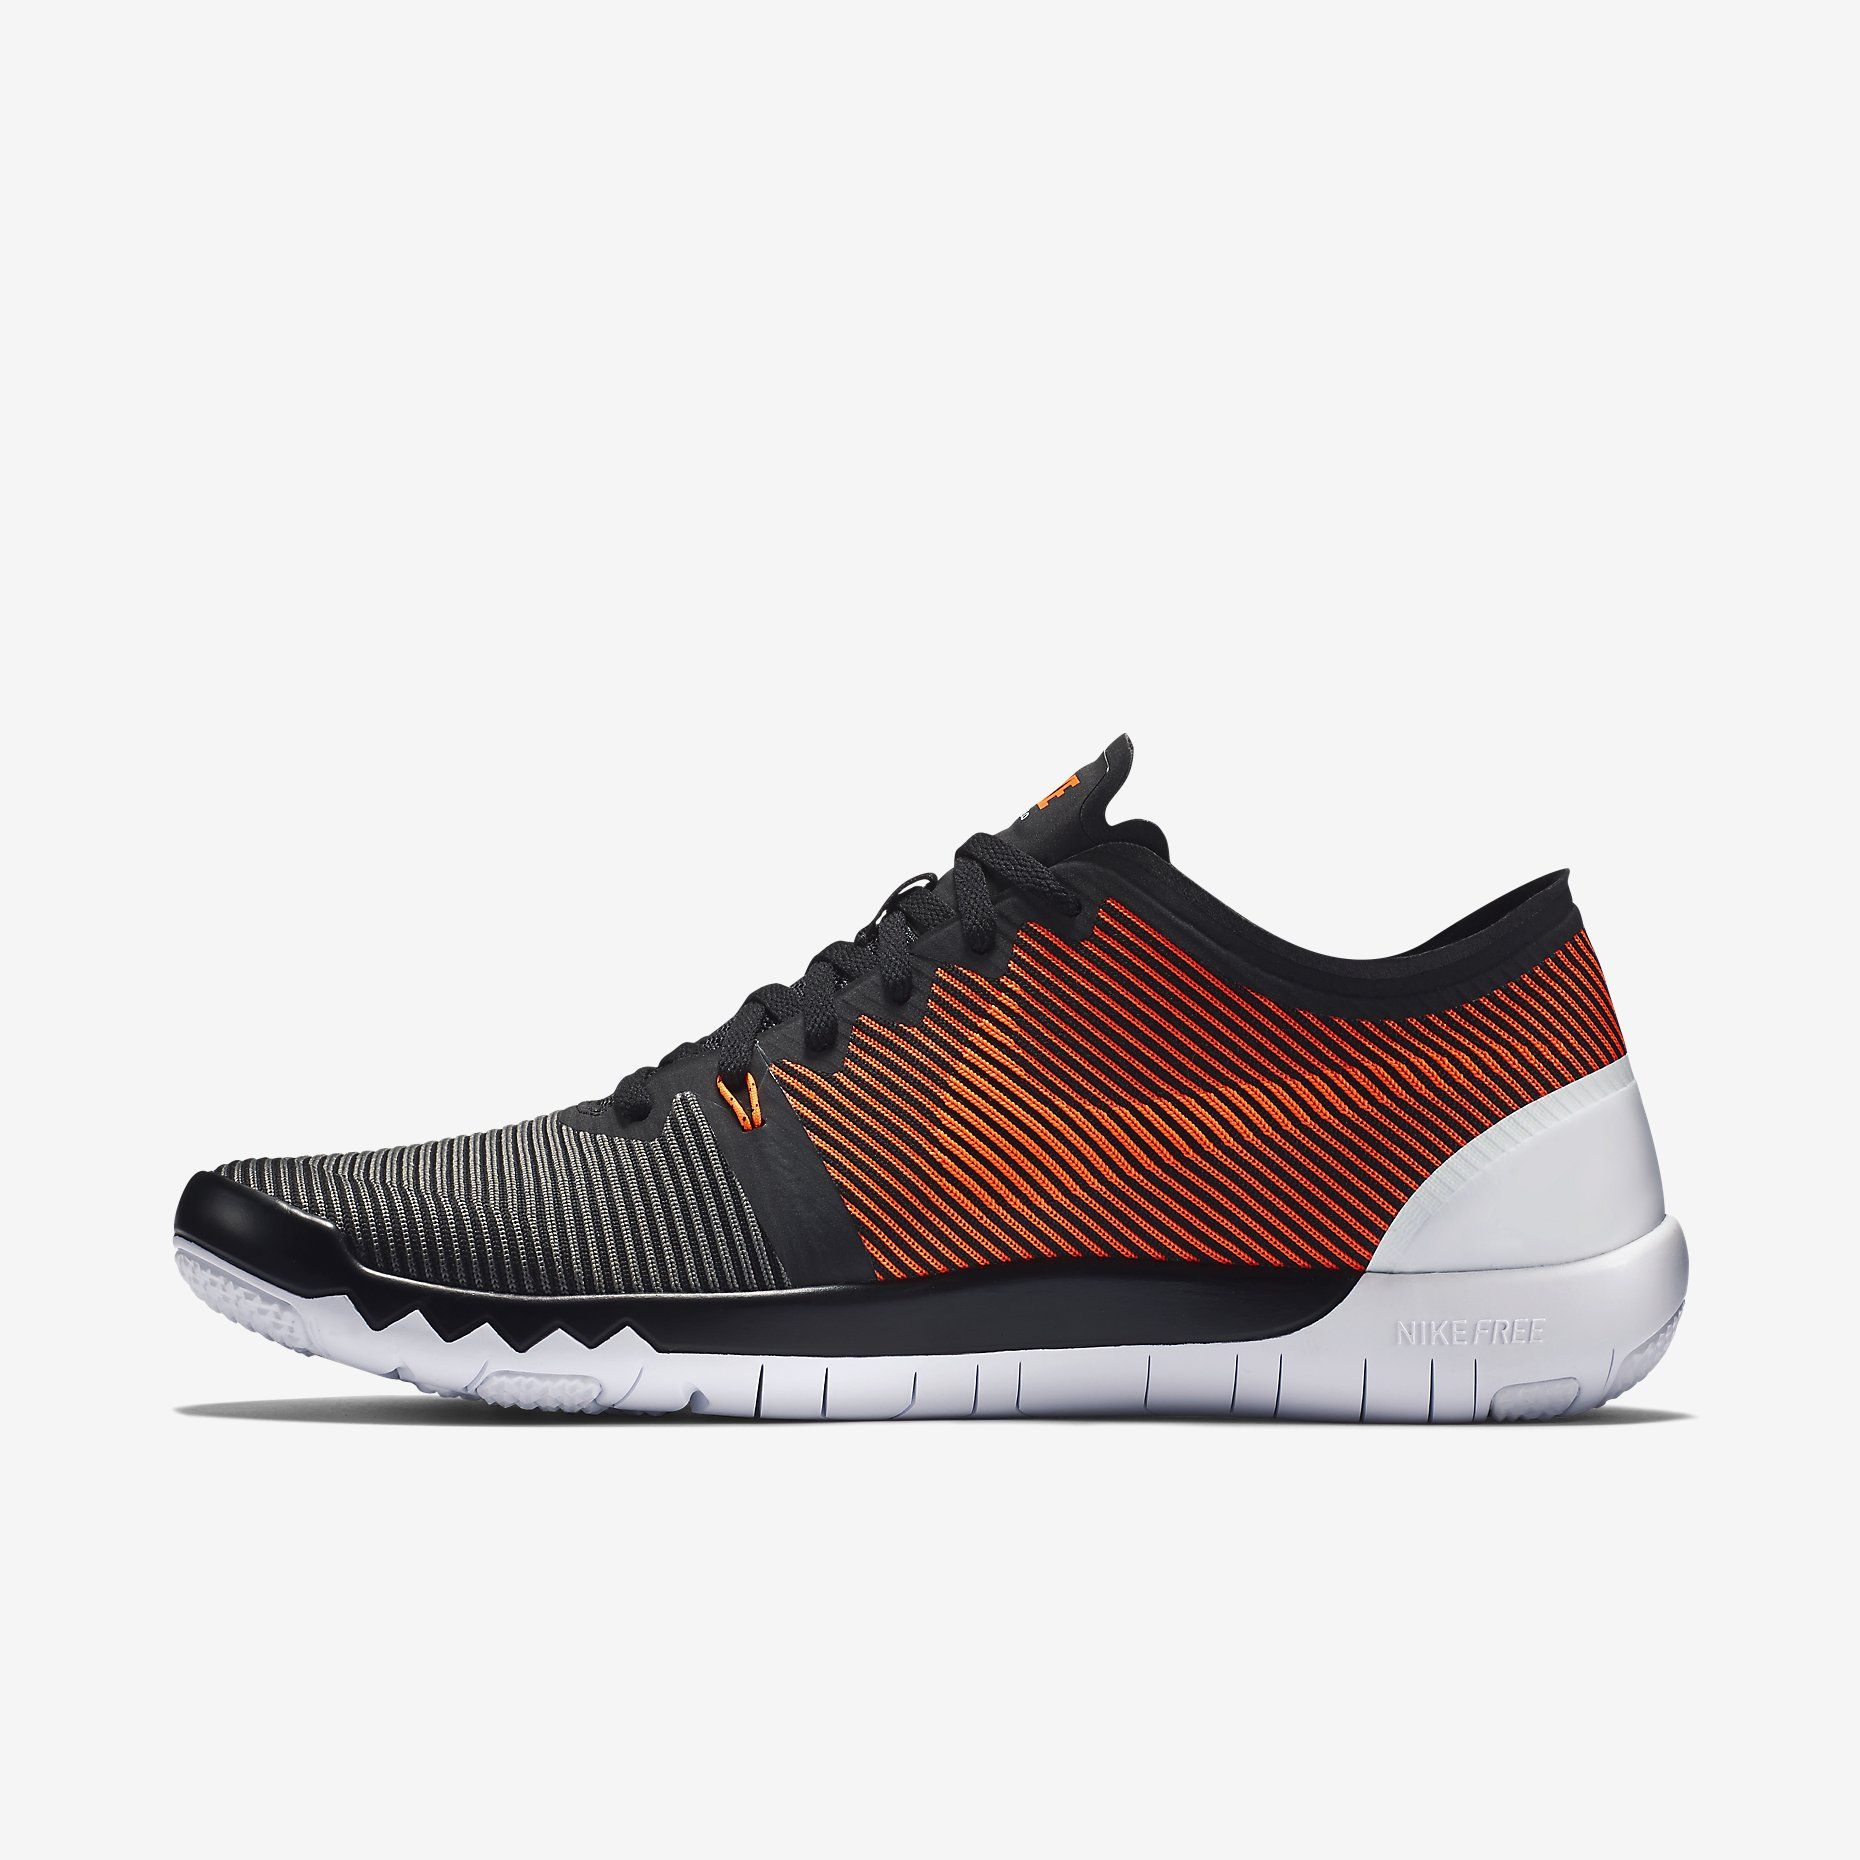 047a9ac4f68 Nike Free Trainer 3.0 V4 – Chaussure de training pour Homme. Nike Store FR